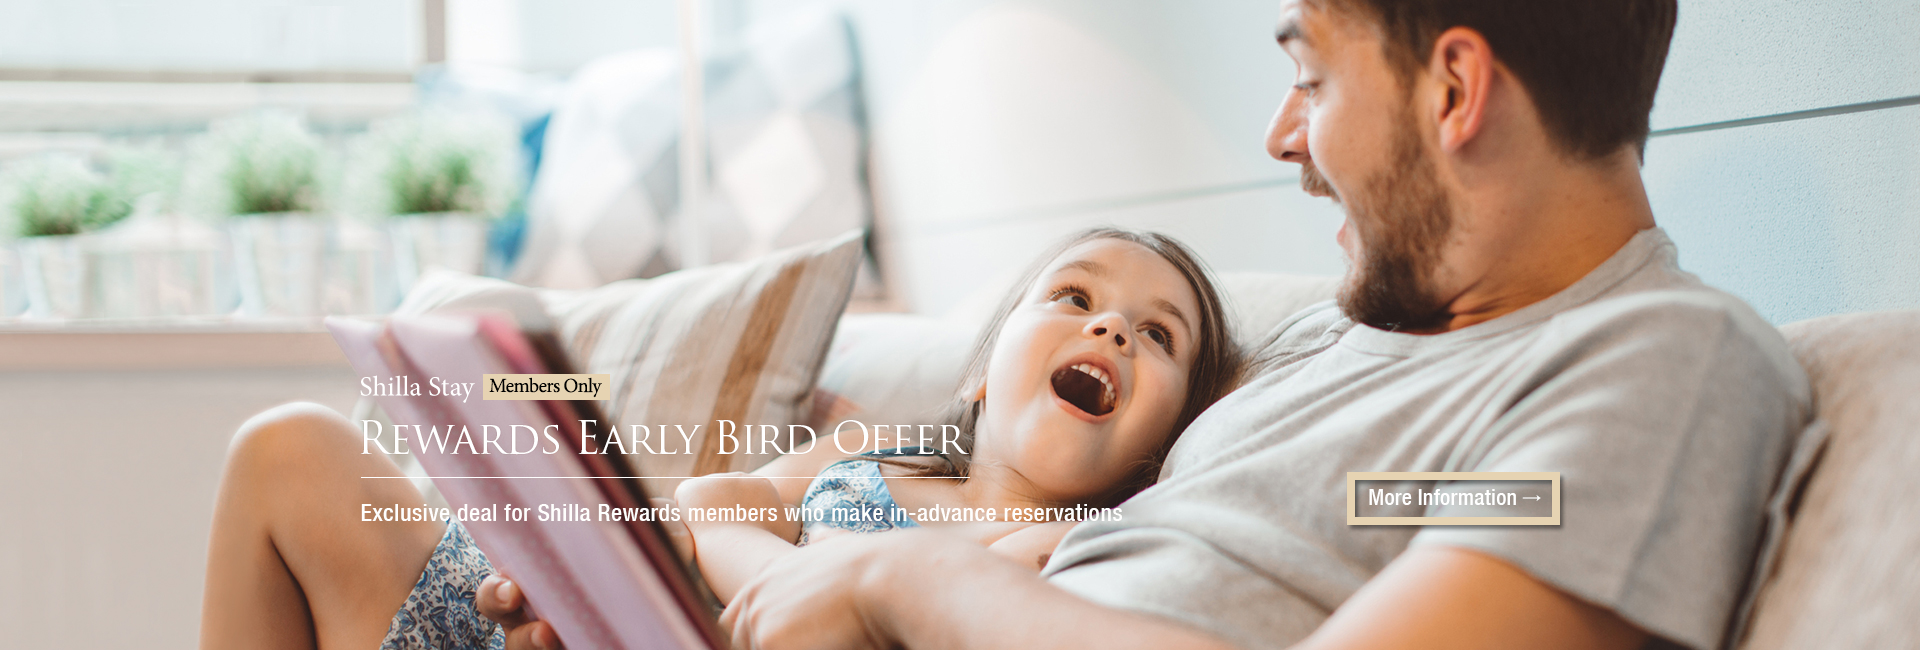 Shilla Stay / Rewards Early Bird Offer